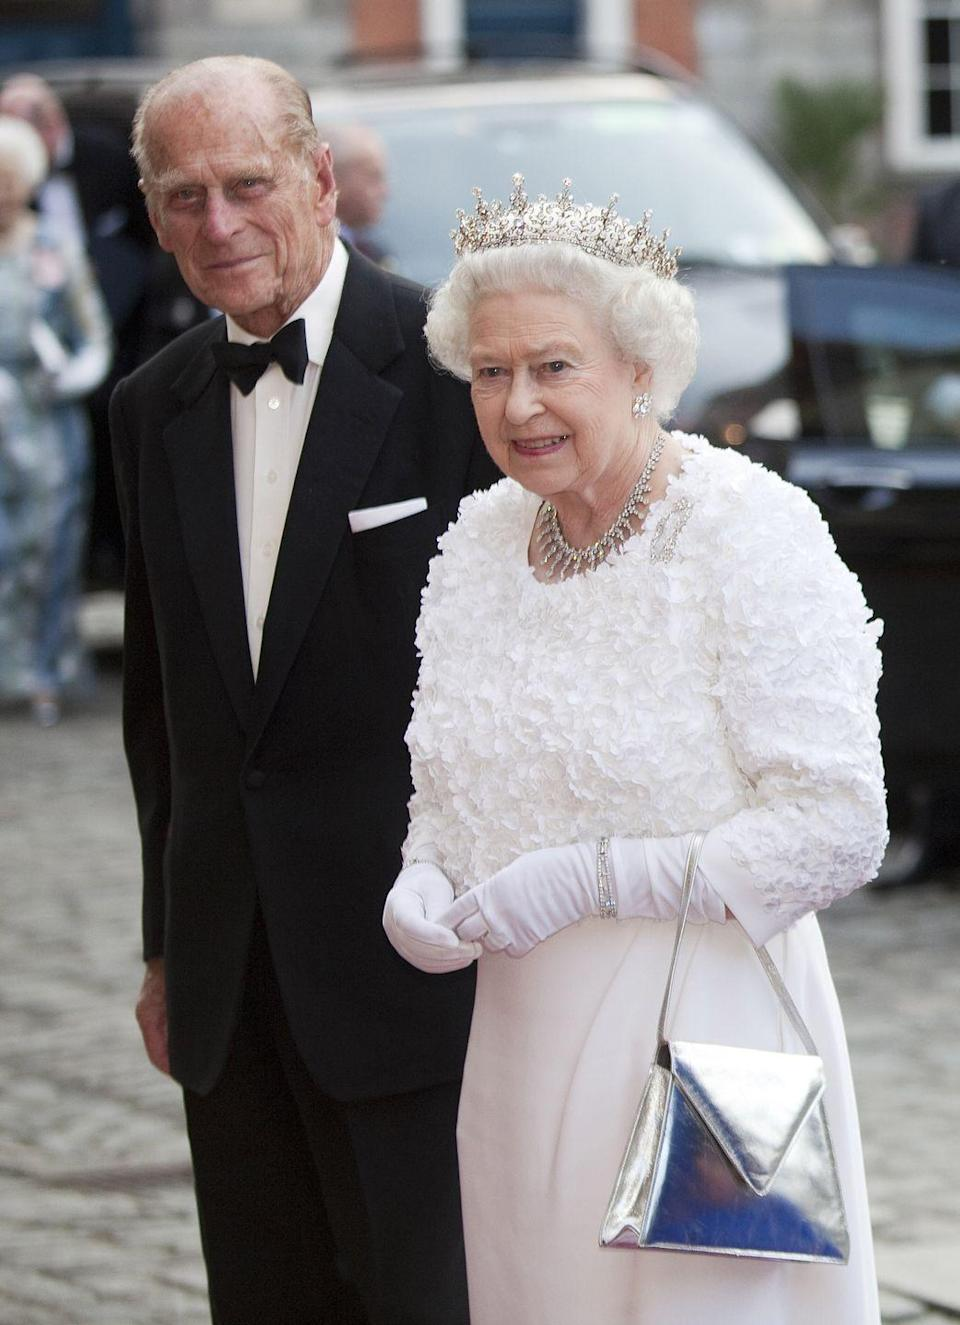 """<p><strong>When did he quit? </strong>1947</p><p><strong>Why did he quit? </strong>In order to <a href=""""https://www.cosmopolitan.com/uk/reports/a36074056/queen-elizabeth-prince-philip-relationship-timeline/"""" rel=""""nofollow noopener"""" target=""""_blank"""" data-ylk=""""slk:marry the then-Princess Elizabeth"""" class=""""link rapid-noclick-resp"""">marry the then-Princess Elizabeth</a>, (who as we know became the Queen of England), <a href=""""https://www.cosmopolitan.com/uk/reports/a37392690/prince-philip-joked-100-years/"""" rel=""""nofollow noopener"""" target=""""_blank"""" data-ylk=""""slk:Prince Philip"""" class=""""link rapid-noclick-resp"""">Prince Philip</a> had to renounce his Danish and Greek royal titles. By doing so, he became a naturalised British subject and took on his maternal grandparents' last name, Mountbatten.  </p>"""